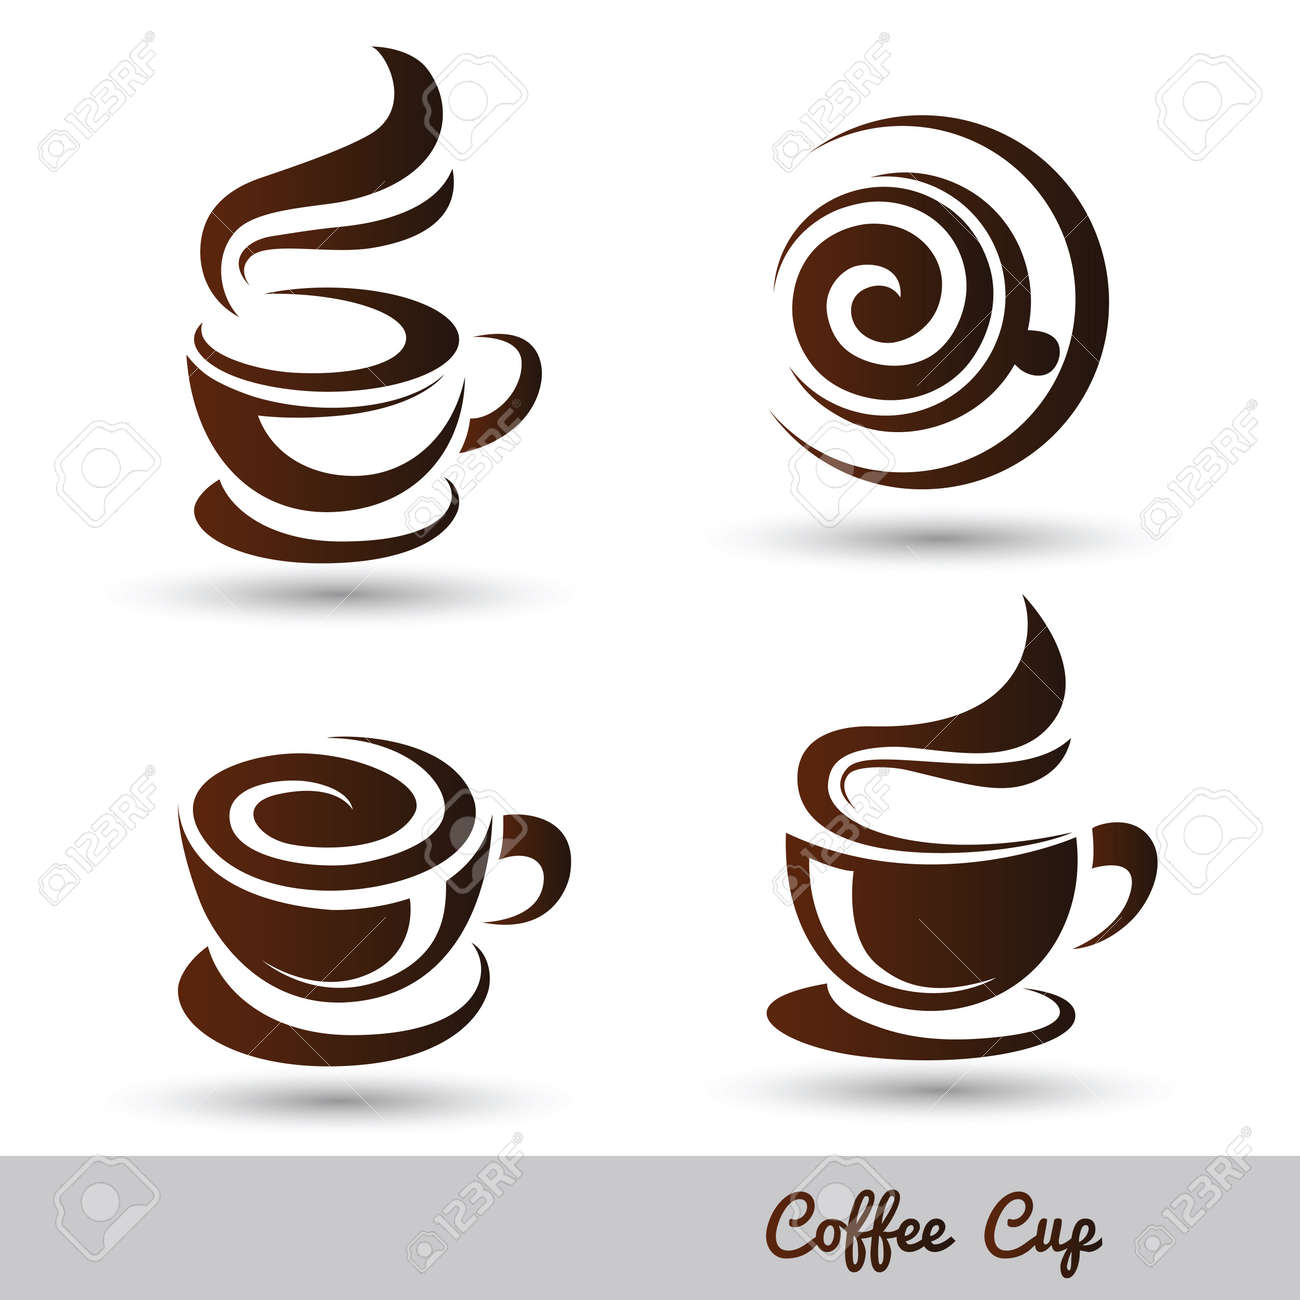 coffee cup set vector,illustration Stock Vector - 47914118